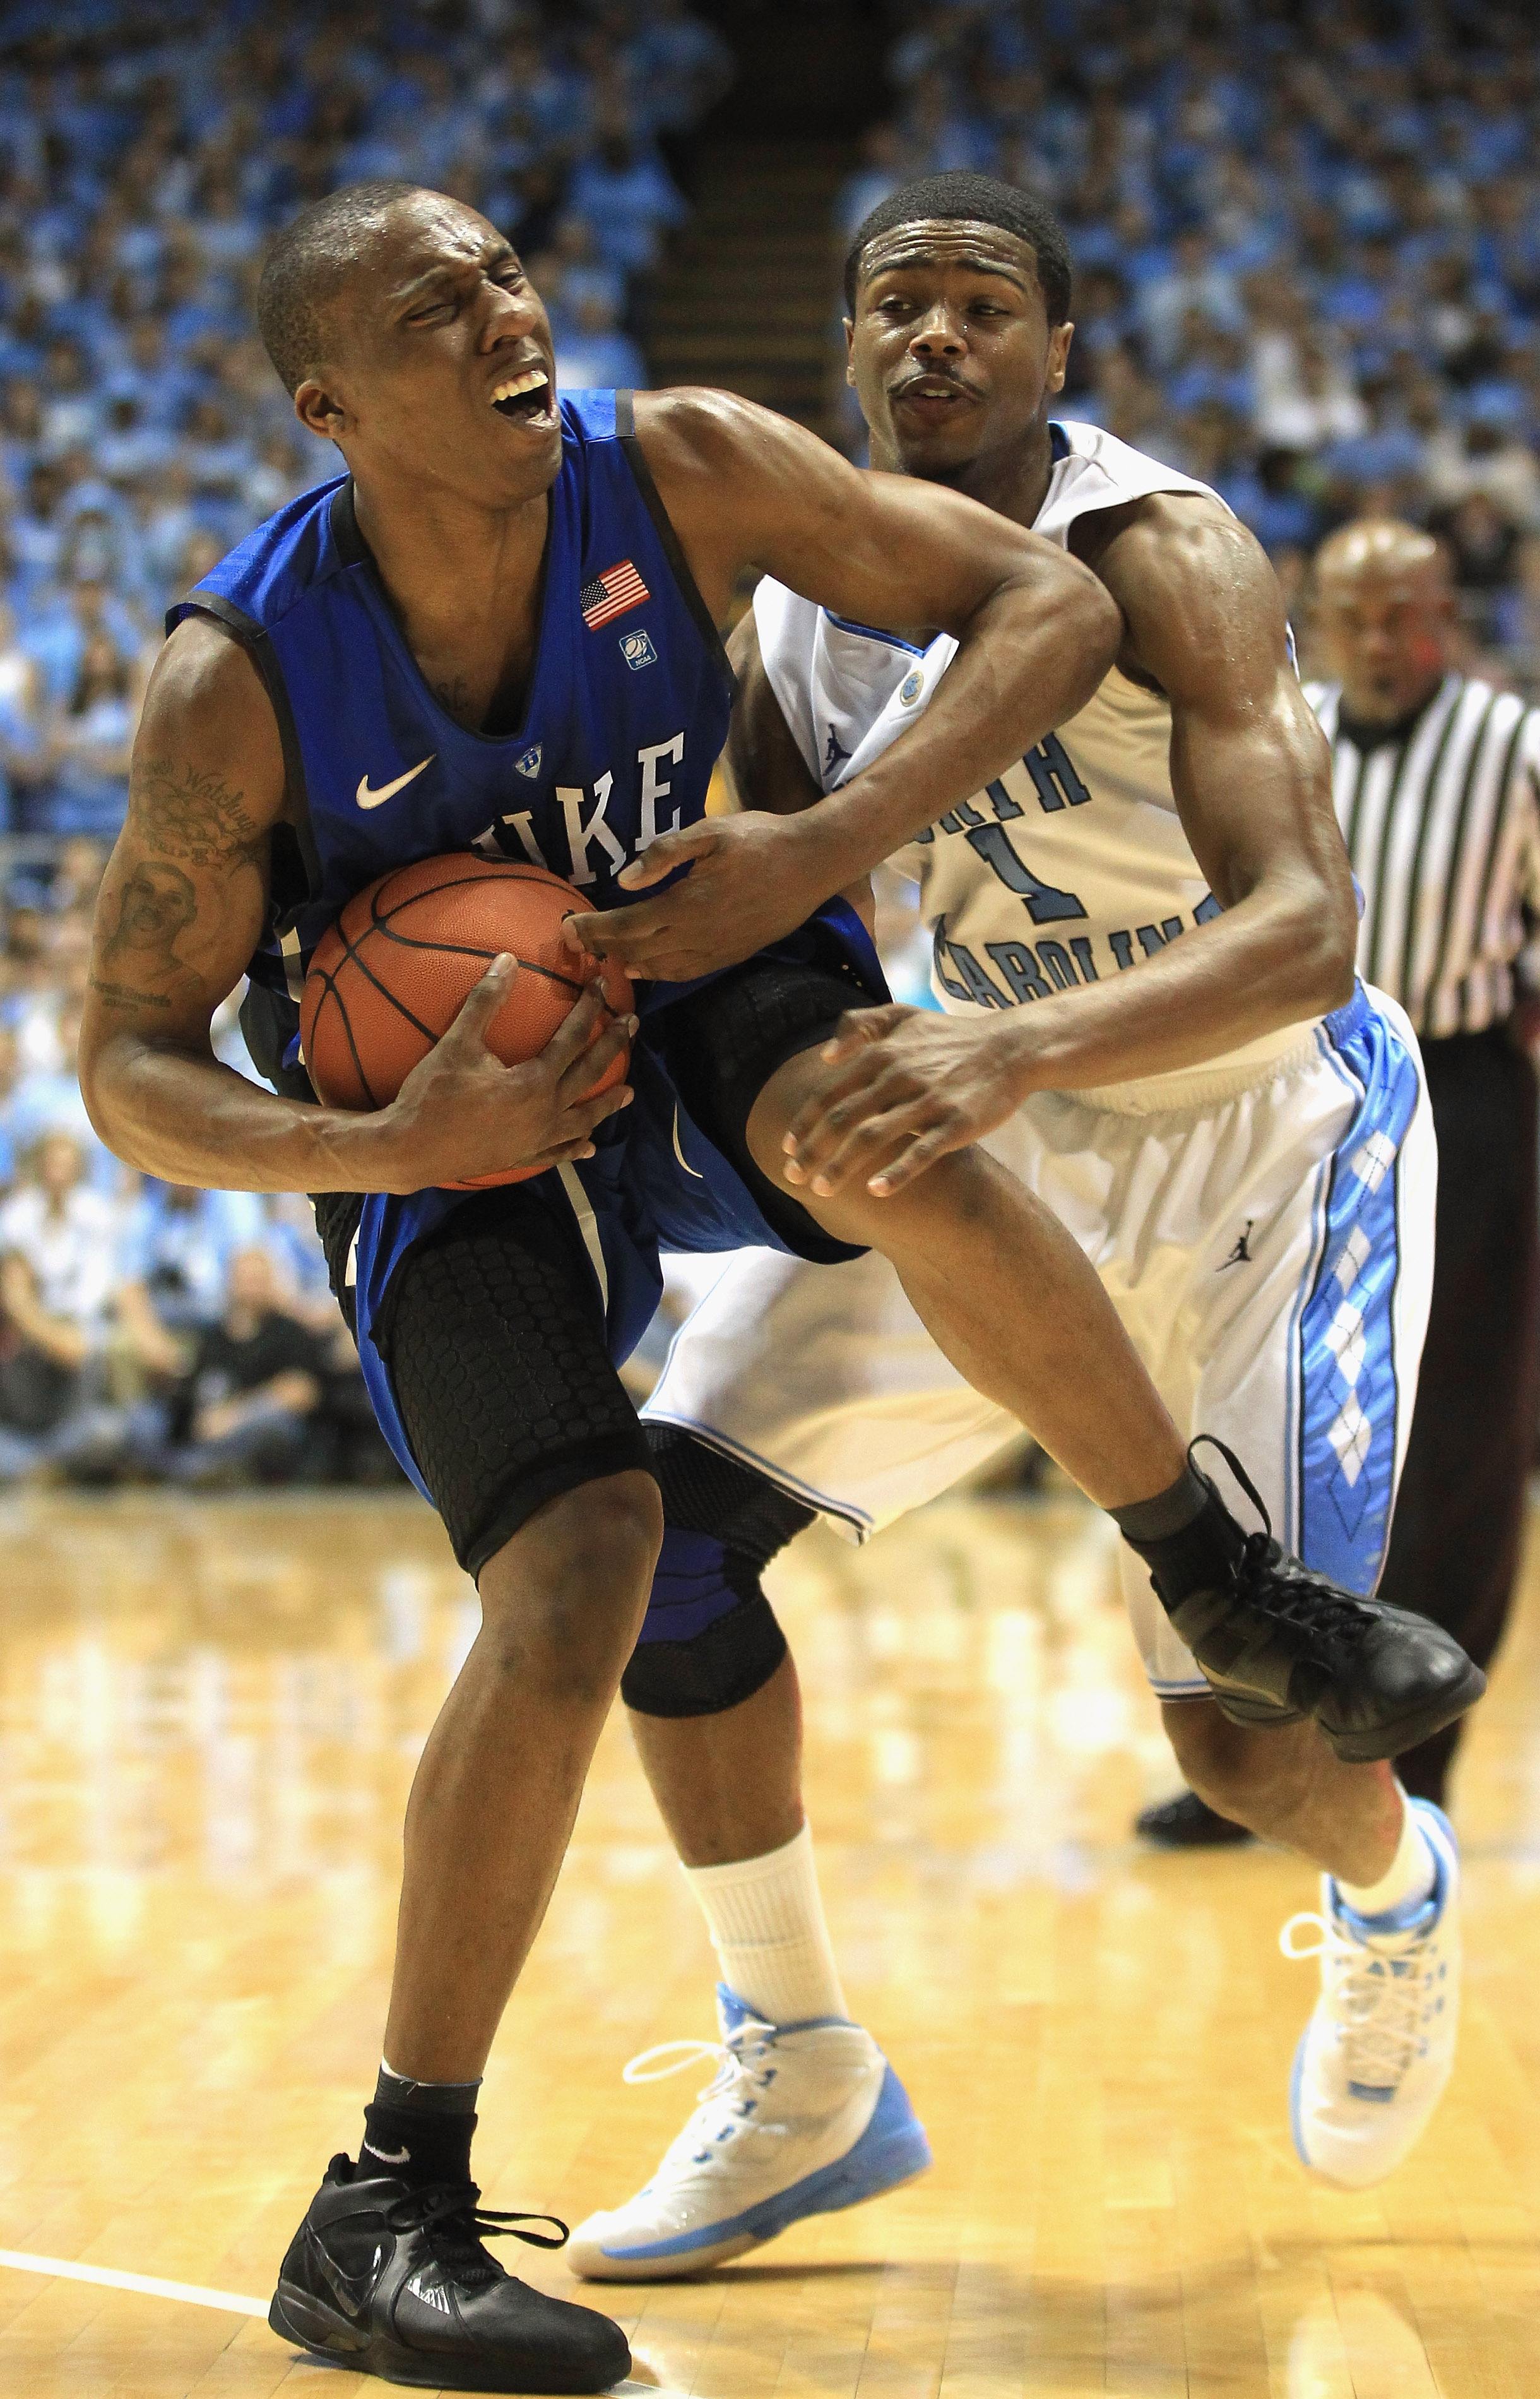 CHAPEL HILL, NC - MARCH 05:  Nolan Smith #2 of the Duke Blue Devils reacts to running into Dexter Strickland #1 of the North Carolina Tar Heels during their game at the Dean E. Smith Center on March 5, 2011 in Chapel Hill, North Carolina.  (Photo by Stree